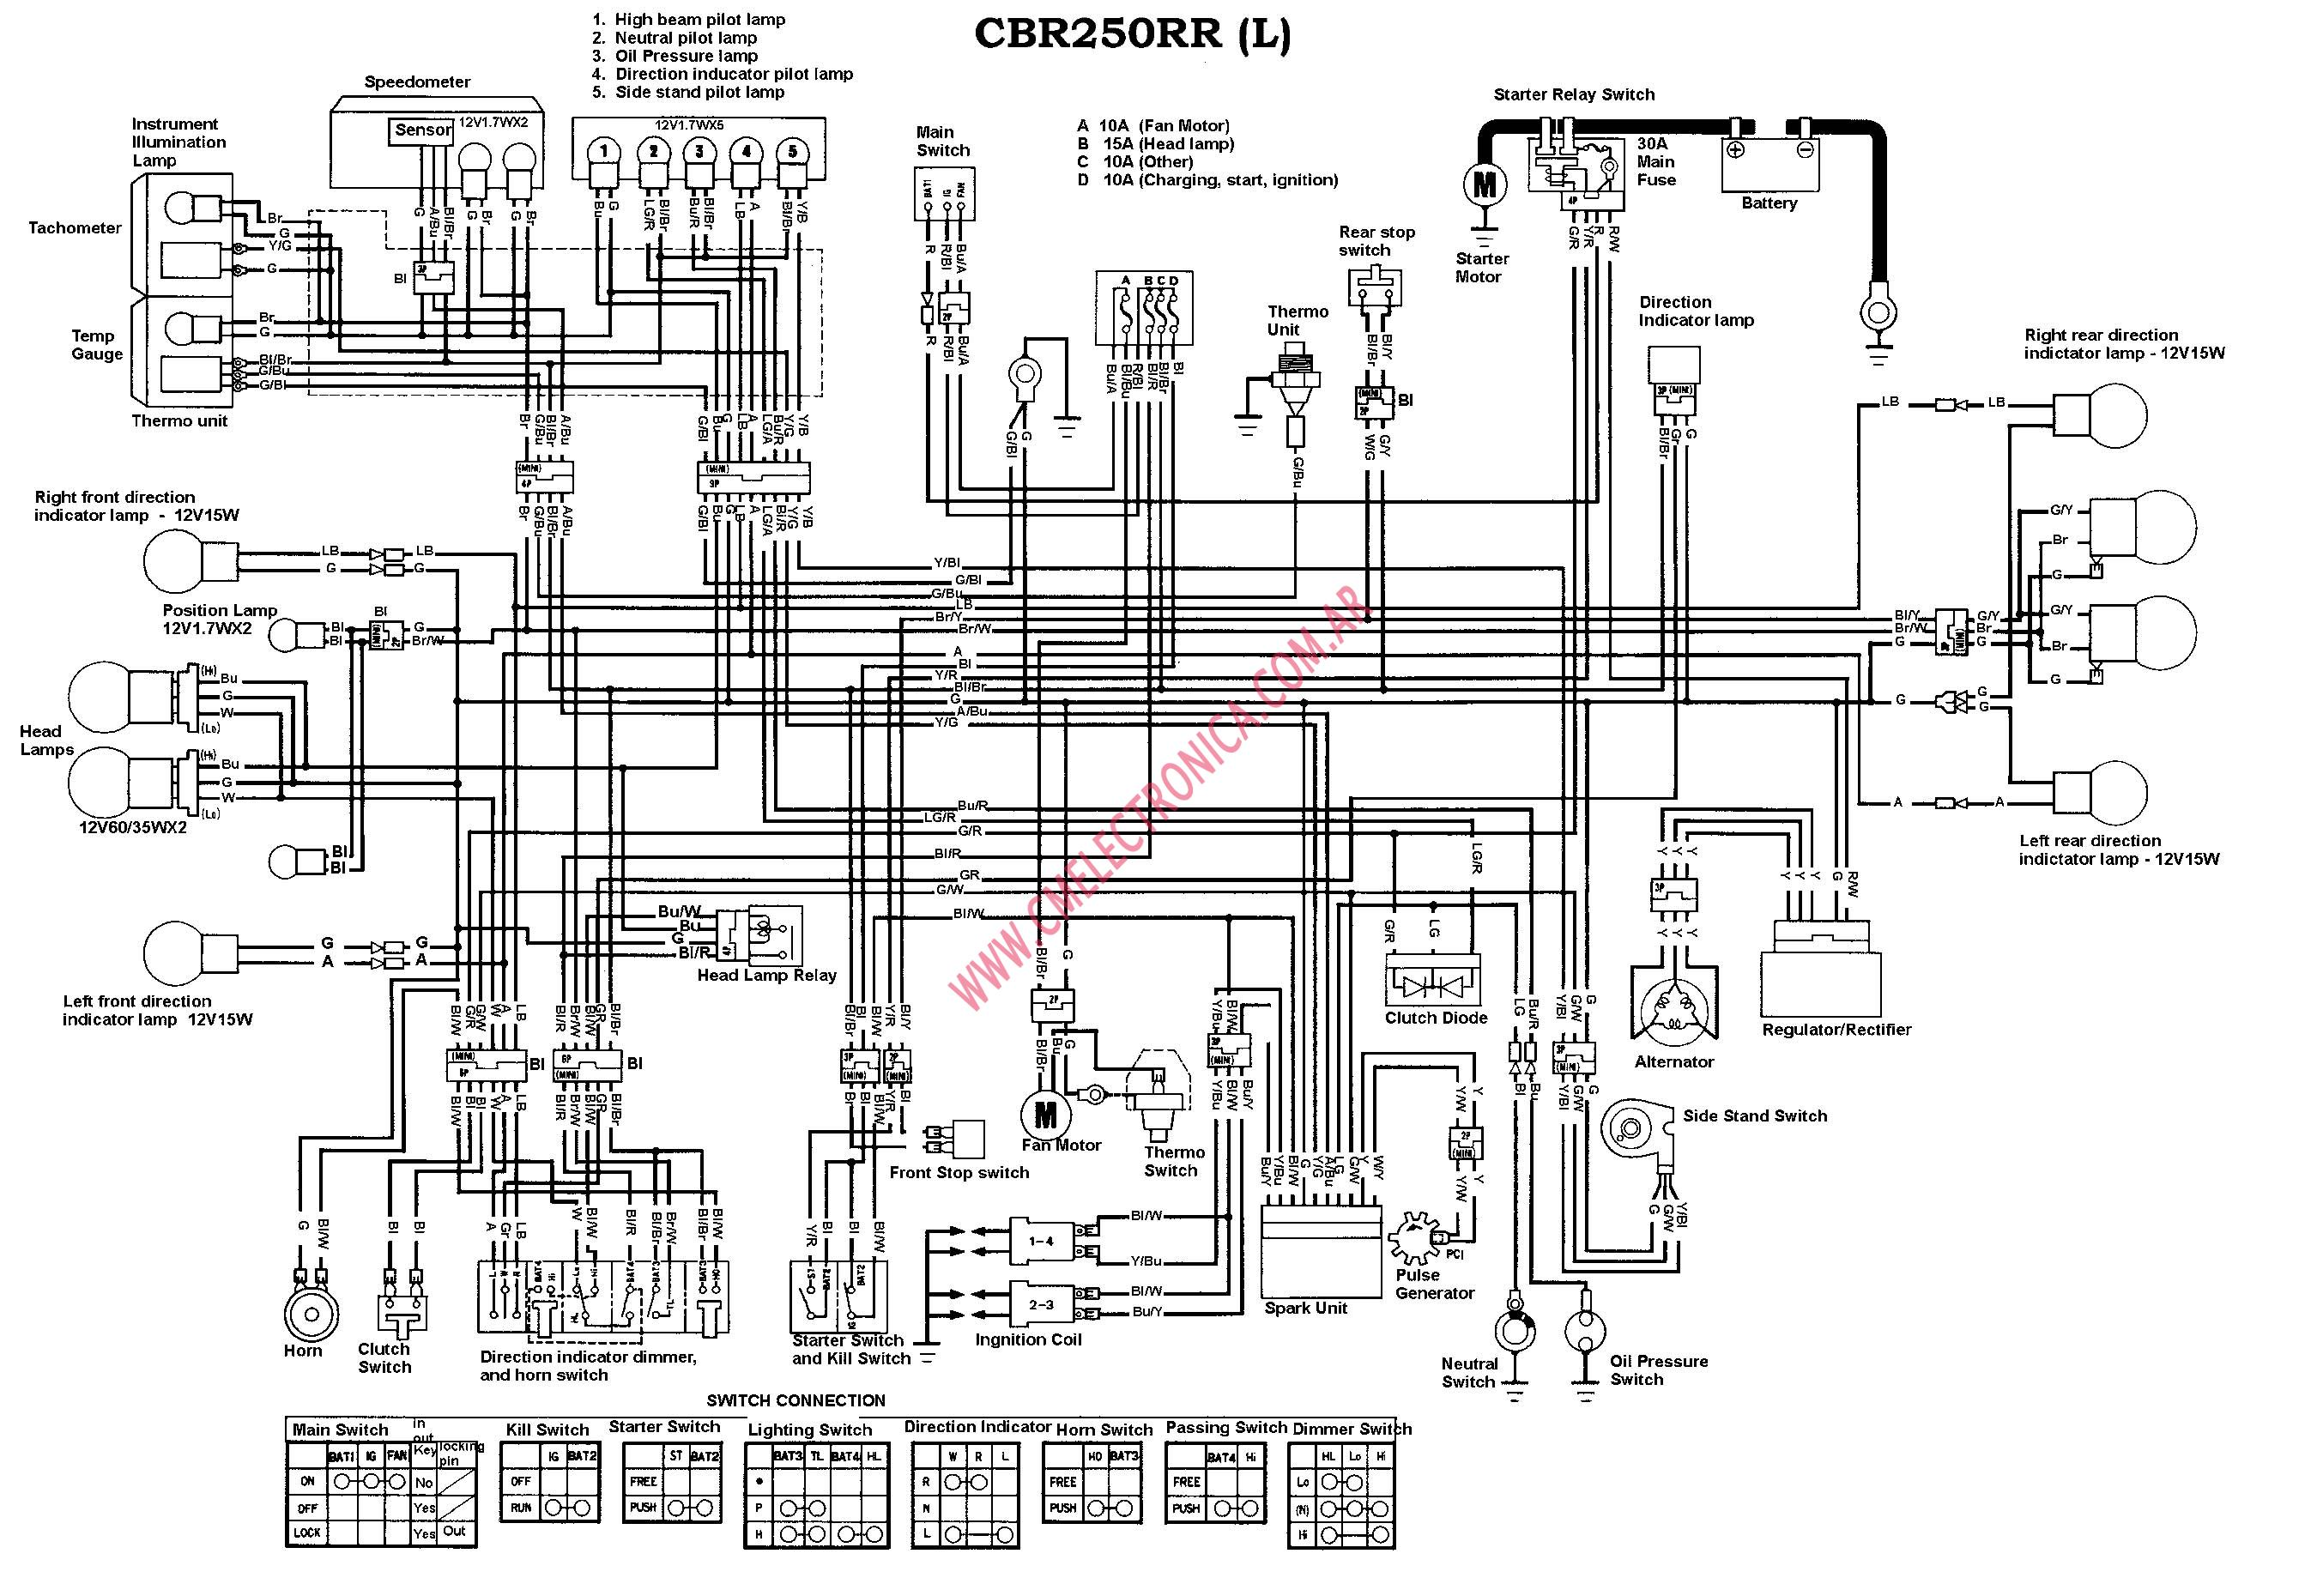 DIAGRAM] Honda Nx 250 Wiring Diagram Wiring Diagram FULL Version HD Quality Wiring  Diagram - JOOMLACLASSDIAGRAM.BLIMUNDE.ITWiring And Fuse Image - blimunde.it